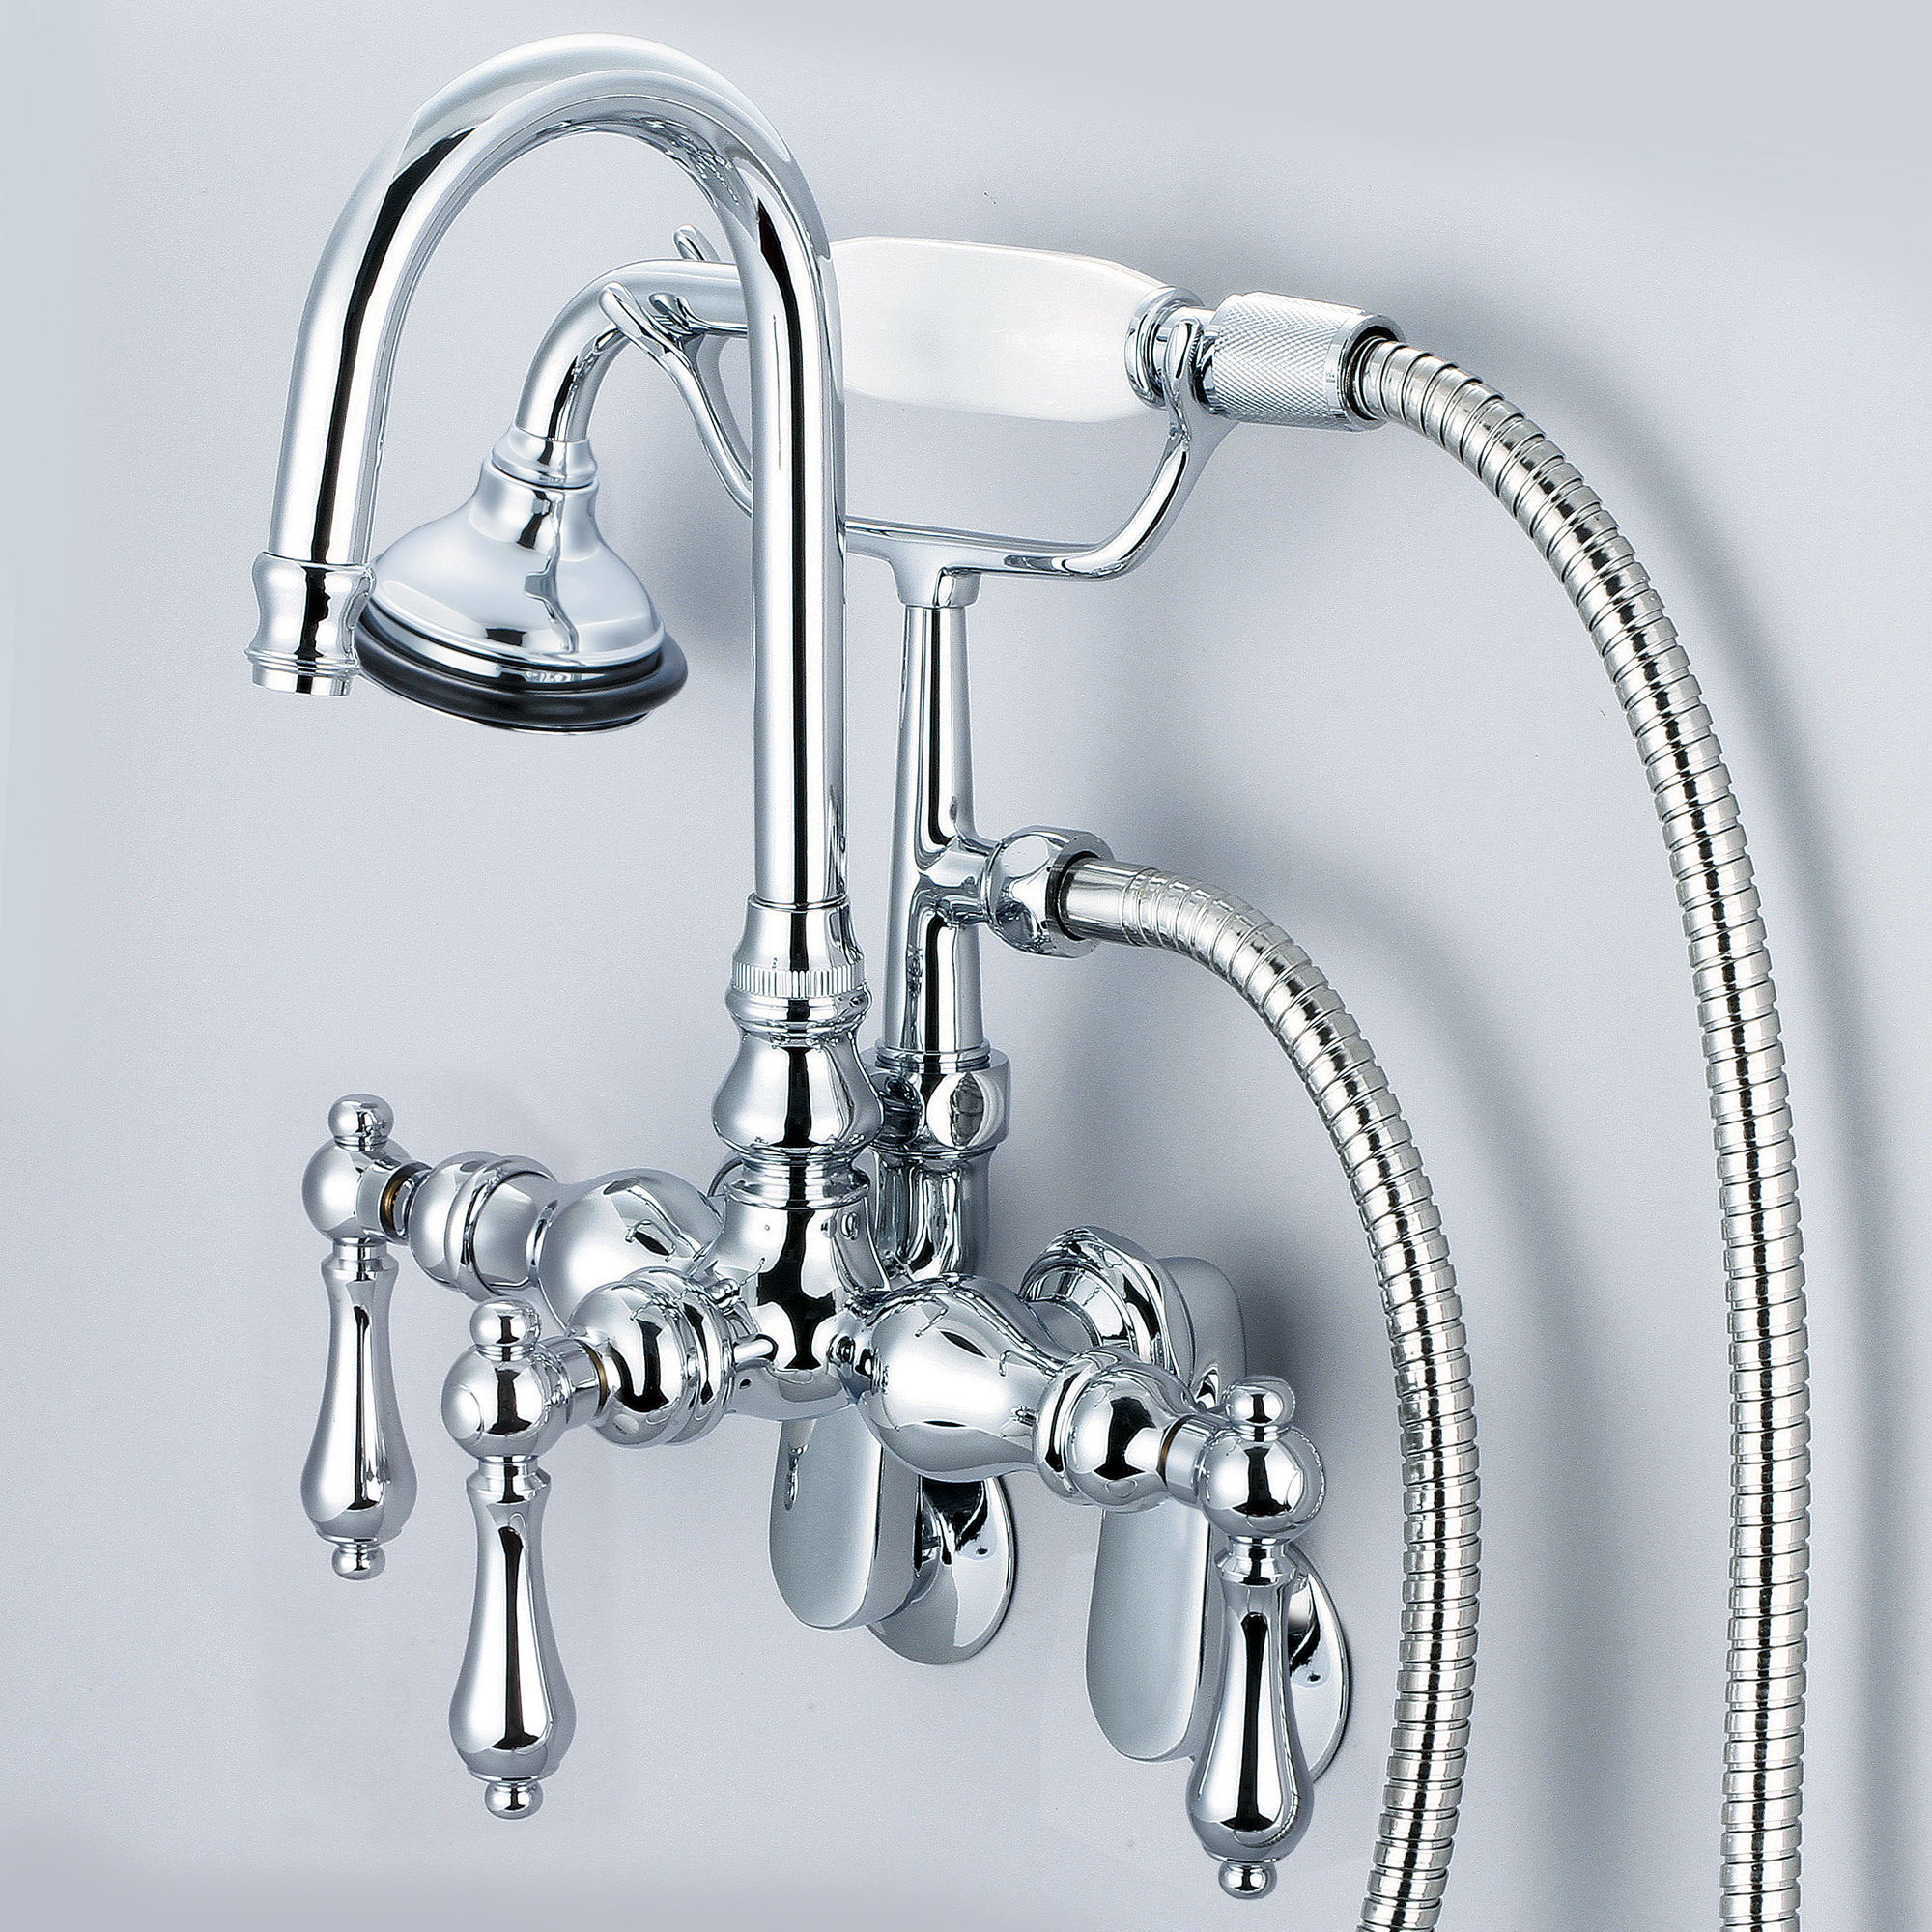 Vintage Classic Adjustable Spread Wall Mount Tub Faucet With Gooseneck Spout, Swivel Wall Connector & Handheld Shower in Chrome Finish With Metal Lever Handles Without Labels